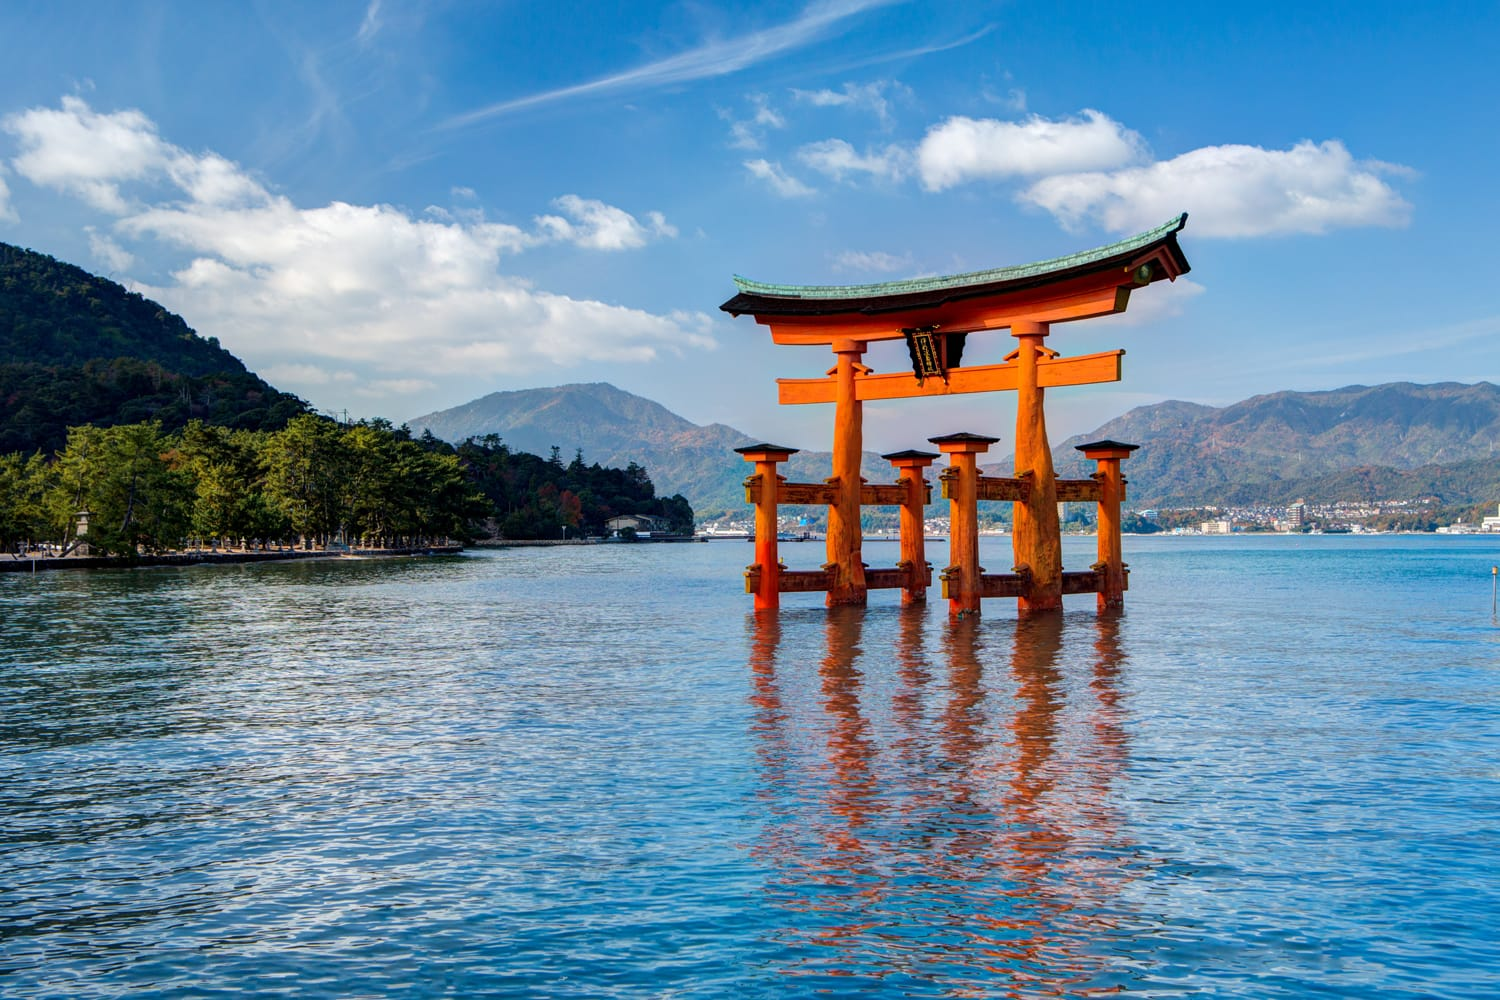 Itsukushima Shrine, floating Japanese Torii Gate